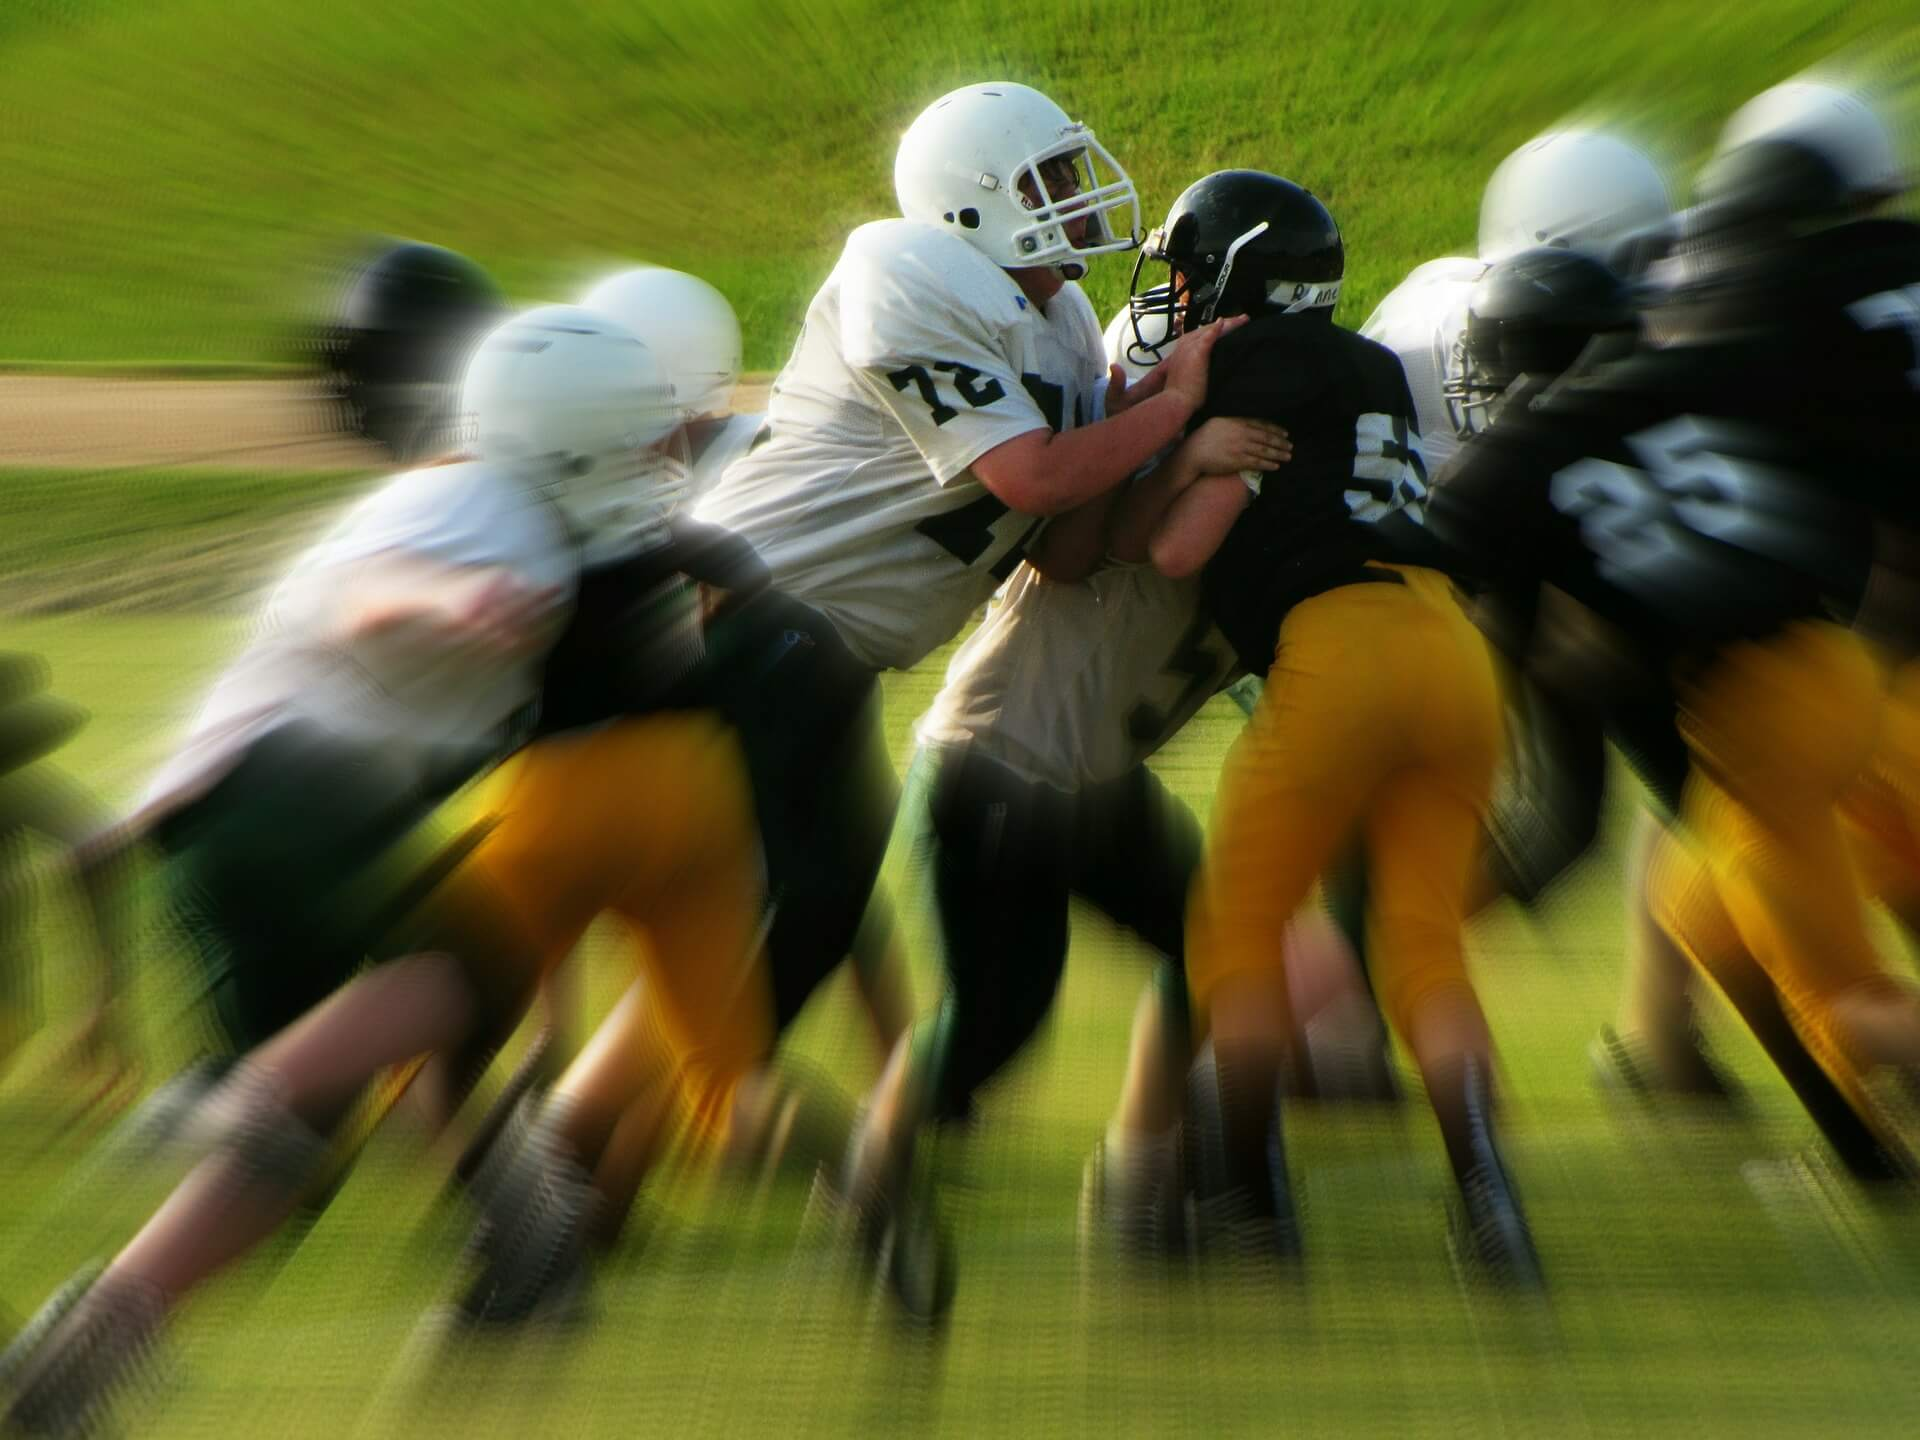 Help Students Stay Ahead Of Concussions